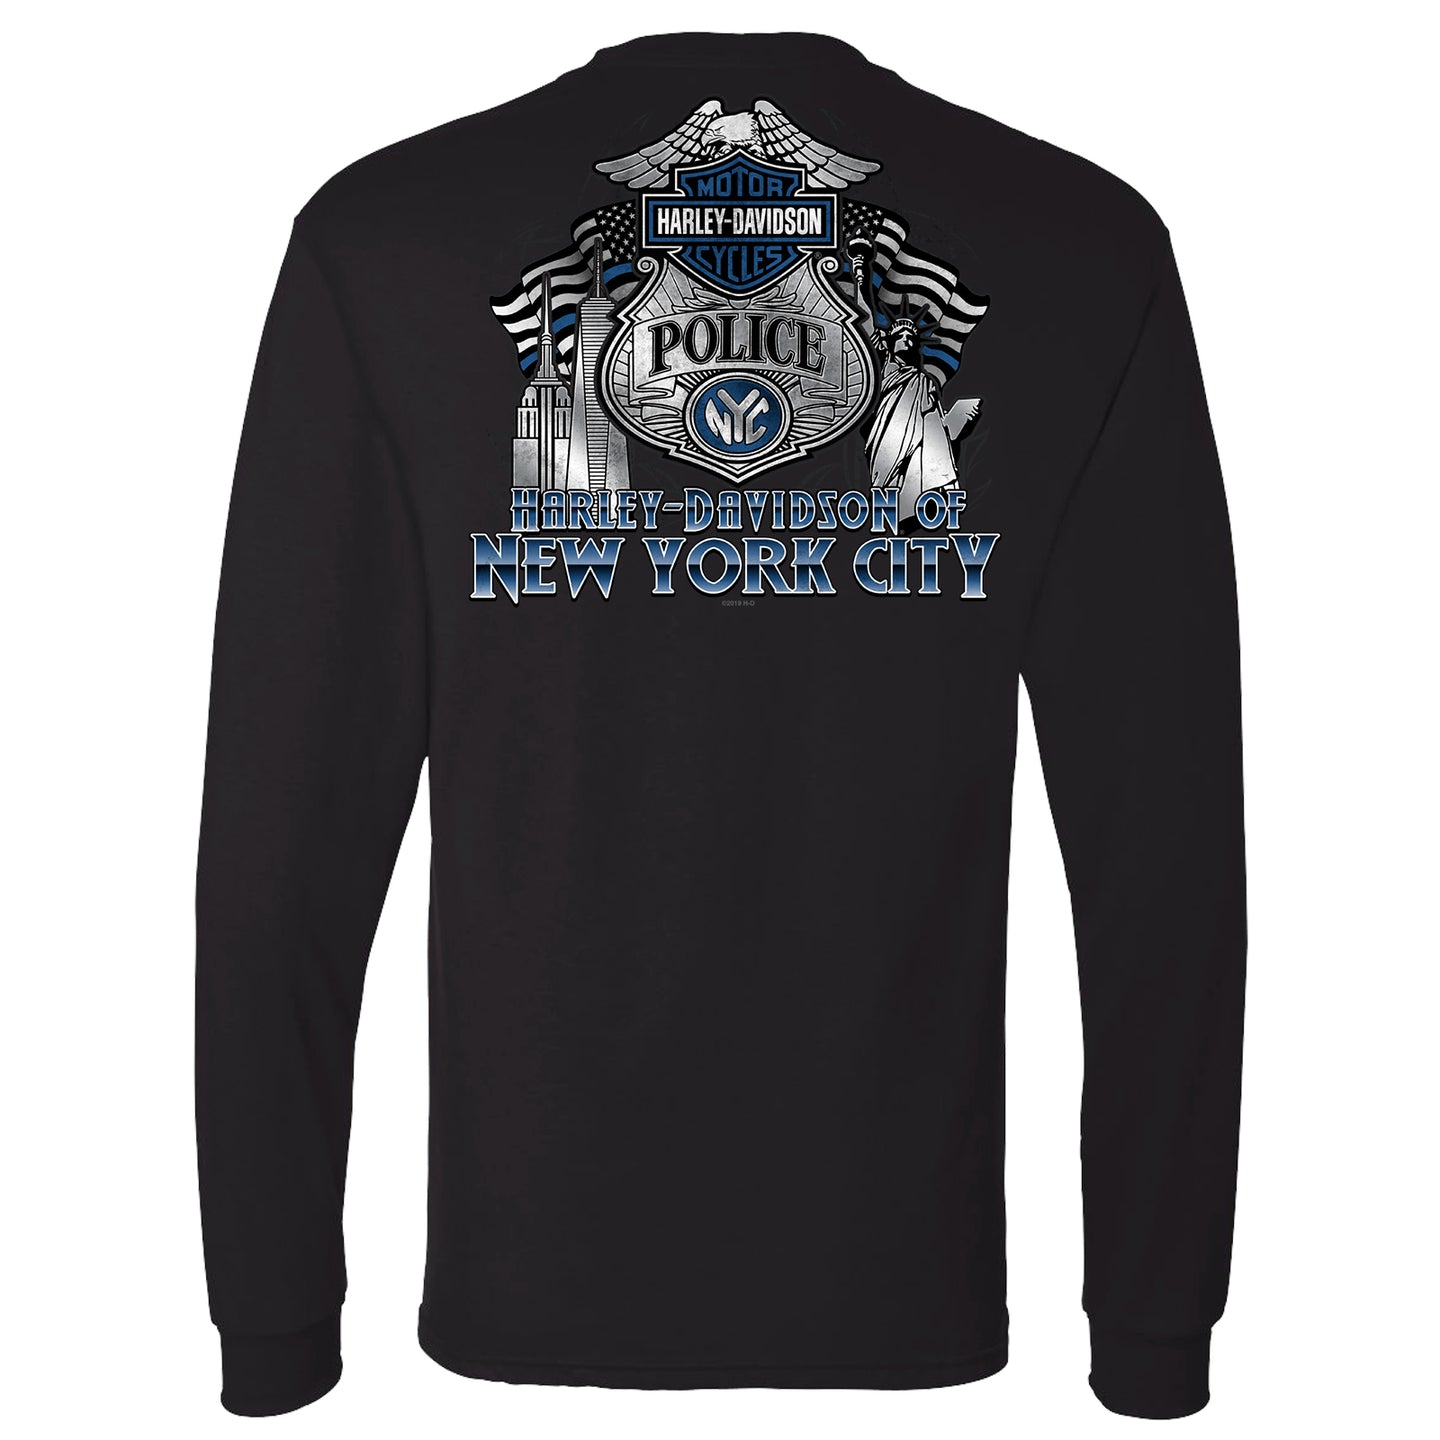 back-harley-davidson-nyc-police-long-sleeve-tee